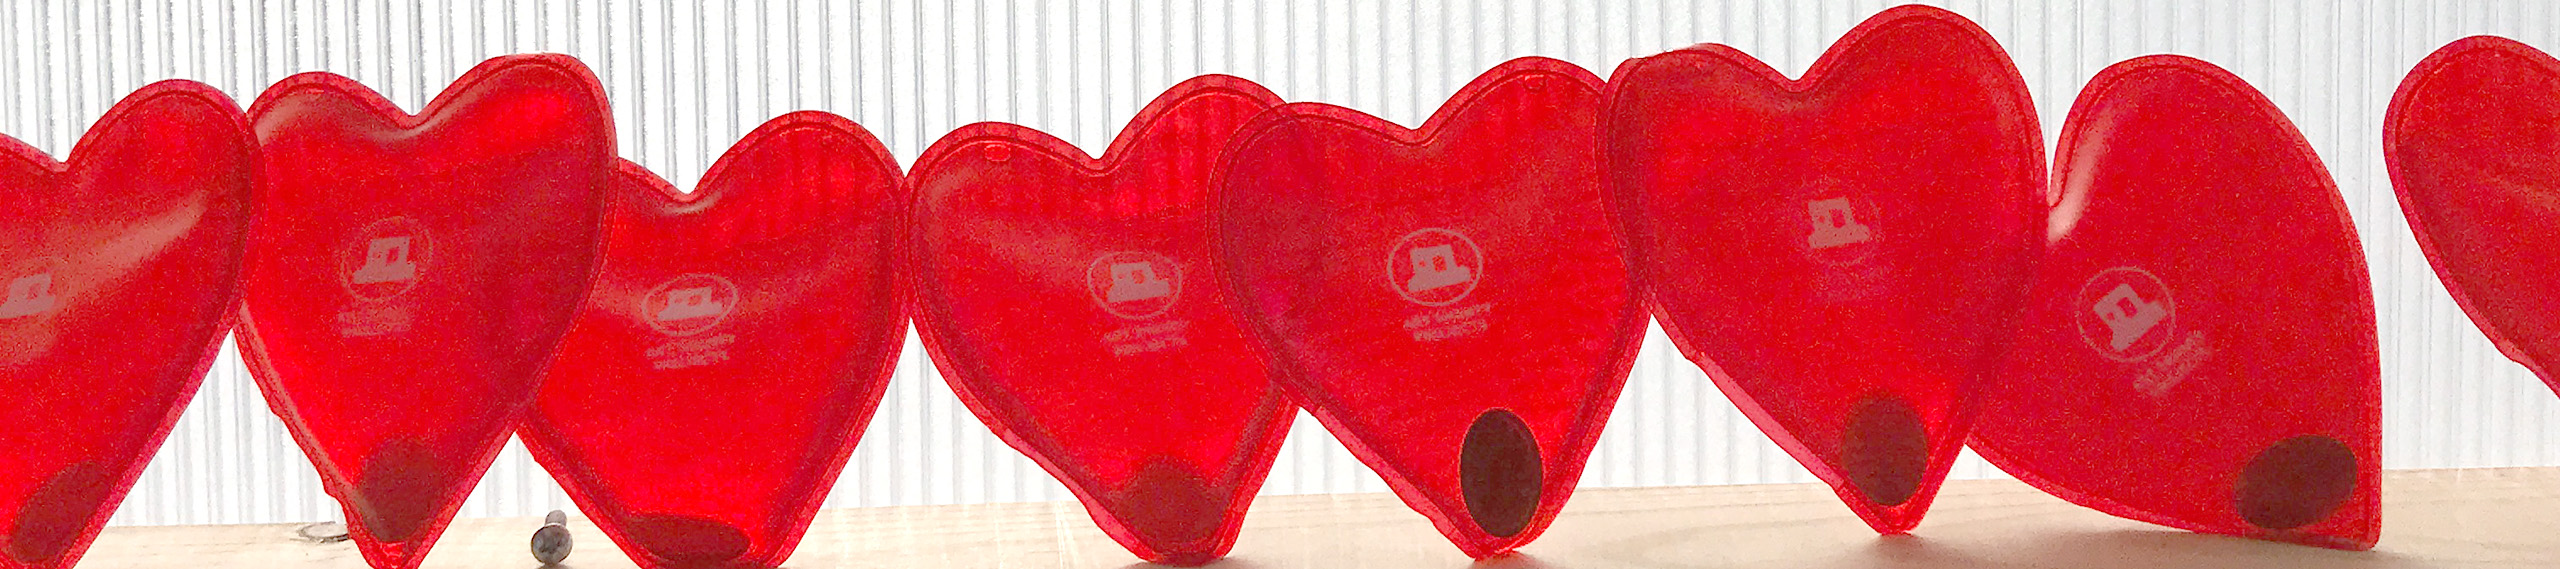 A row of red heart-shaped hand warmers with Art Shanty Projects logo on them